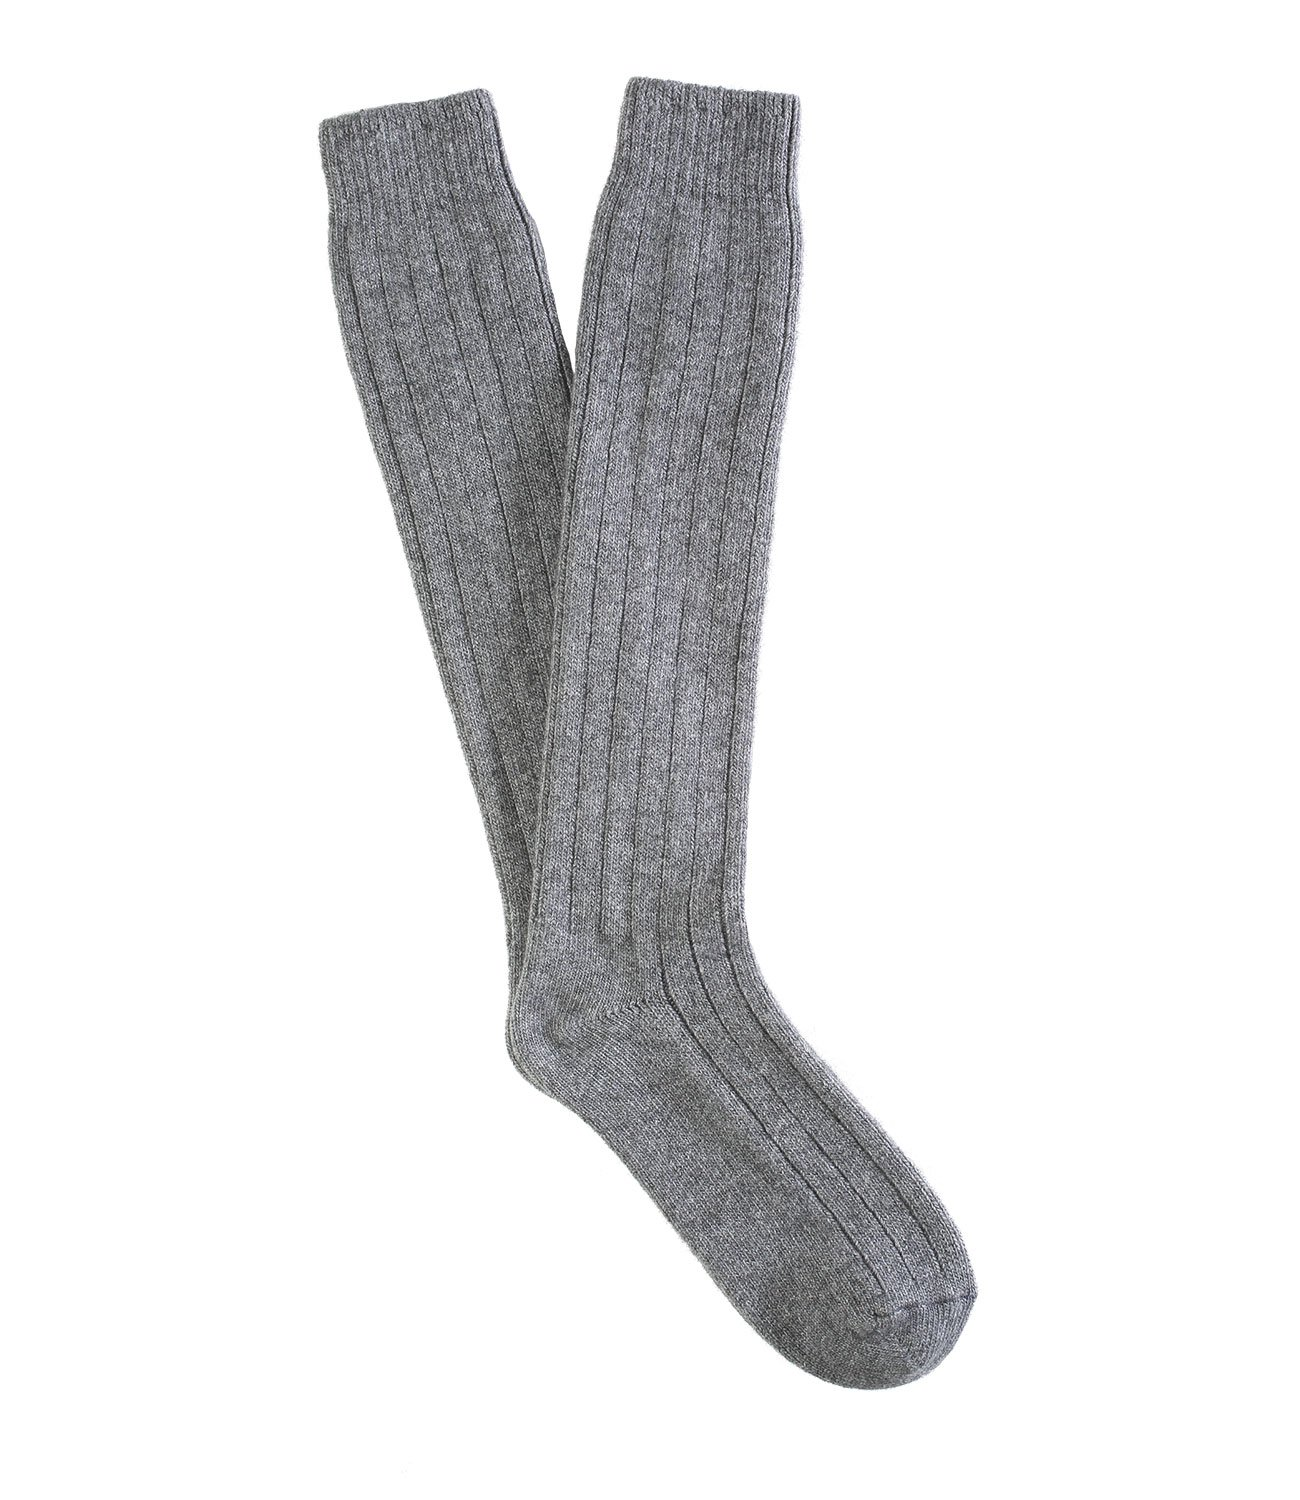 TORINO Knee-high, Grey fine cotton lisle Socks